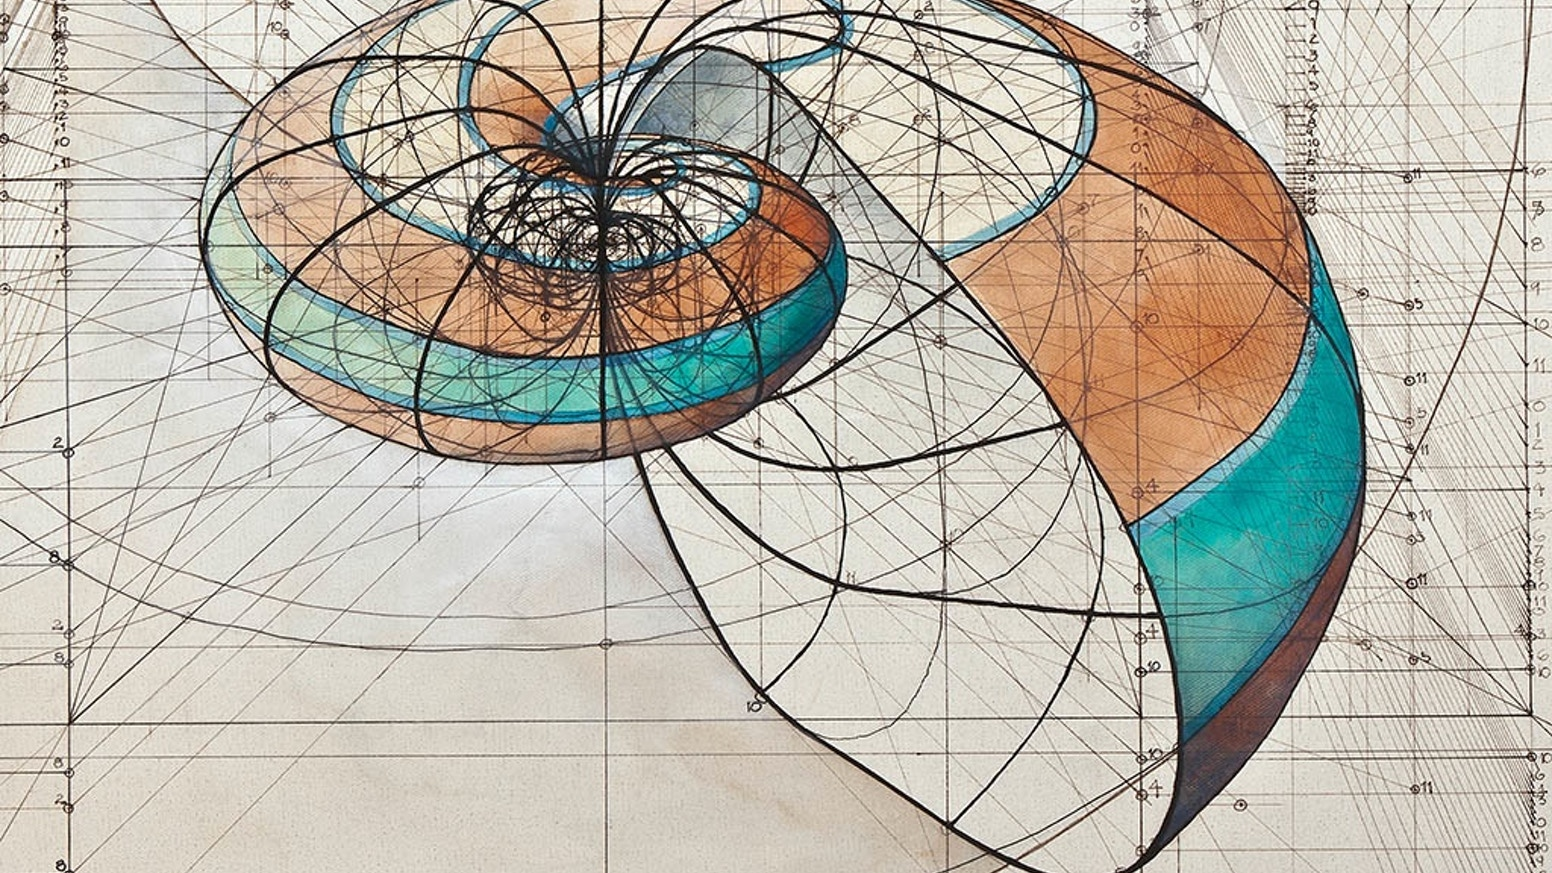 Golden ratio coloring book by rafael araujo kickstarter a coloring book with a collection of rafael araujos hand drawn golden ratio illustrations to reconnect solutioingenieria Images